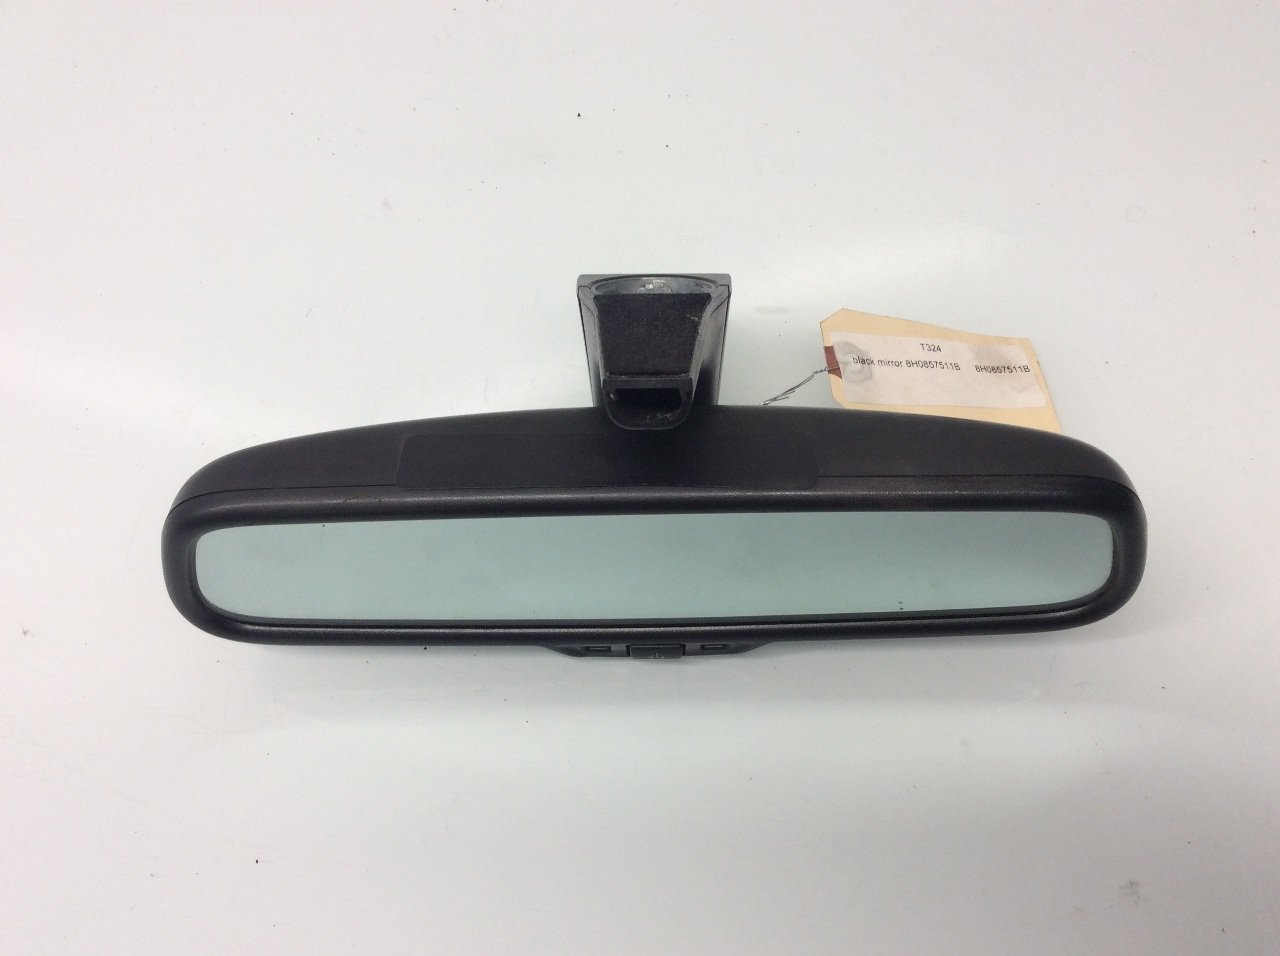 2004 2005 2006 audi a4 s4 cabriolet inside rear view mirror auto dimming black. Black Bedroom Furniture Sets. Home Design Ideas